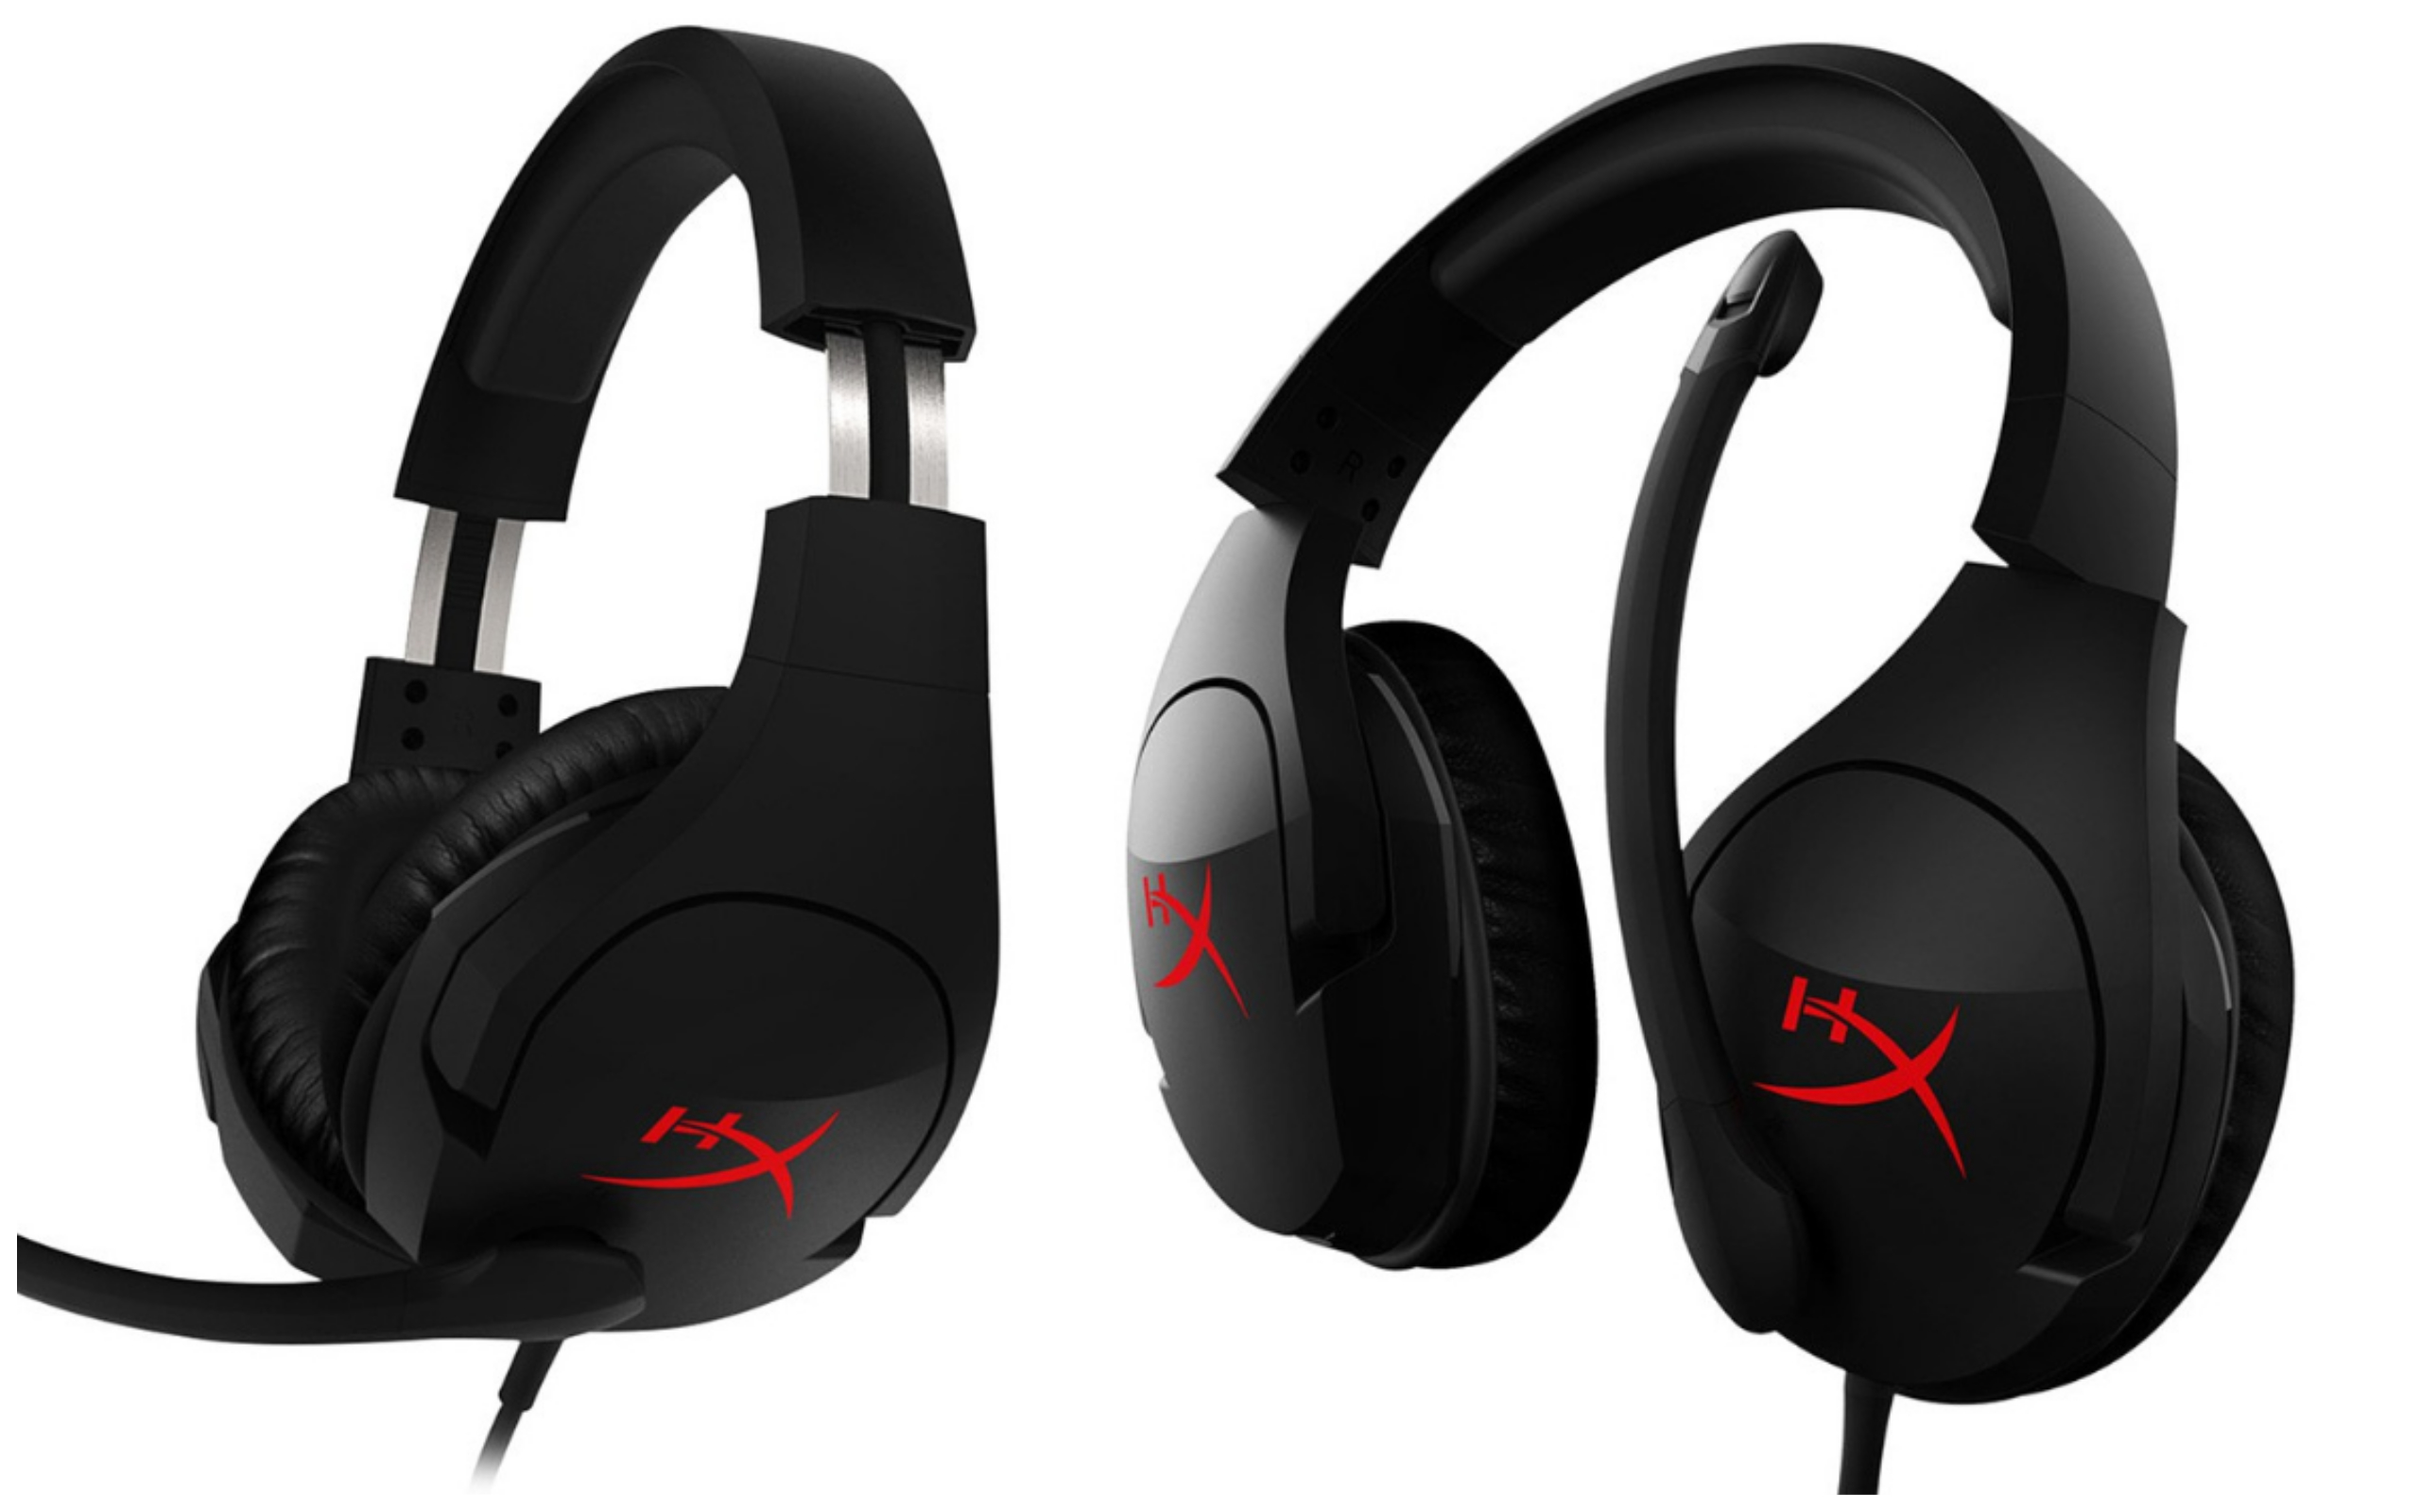 Kingston Hyper Xcloud Gaming Headphones